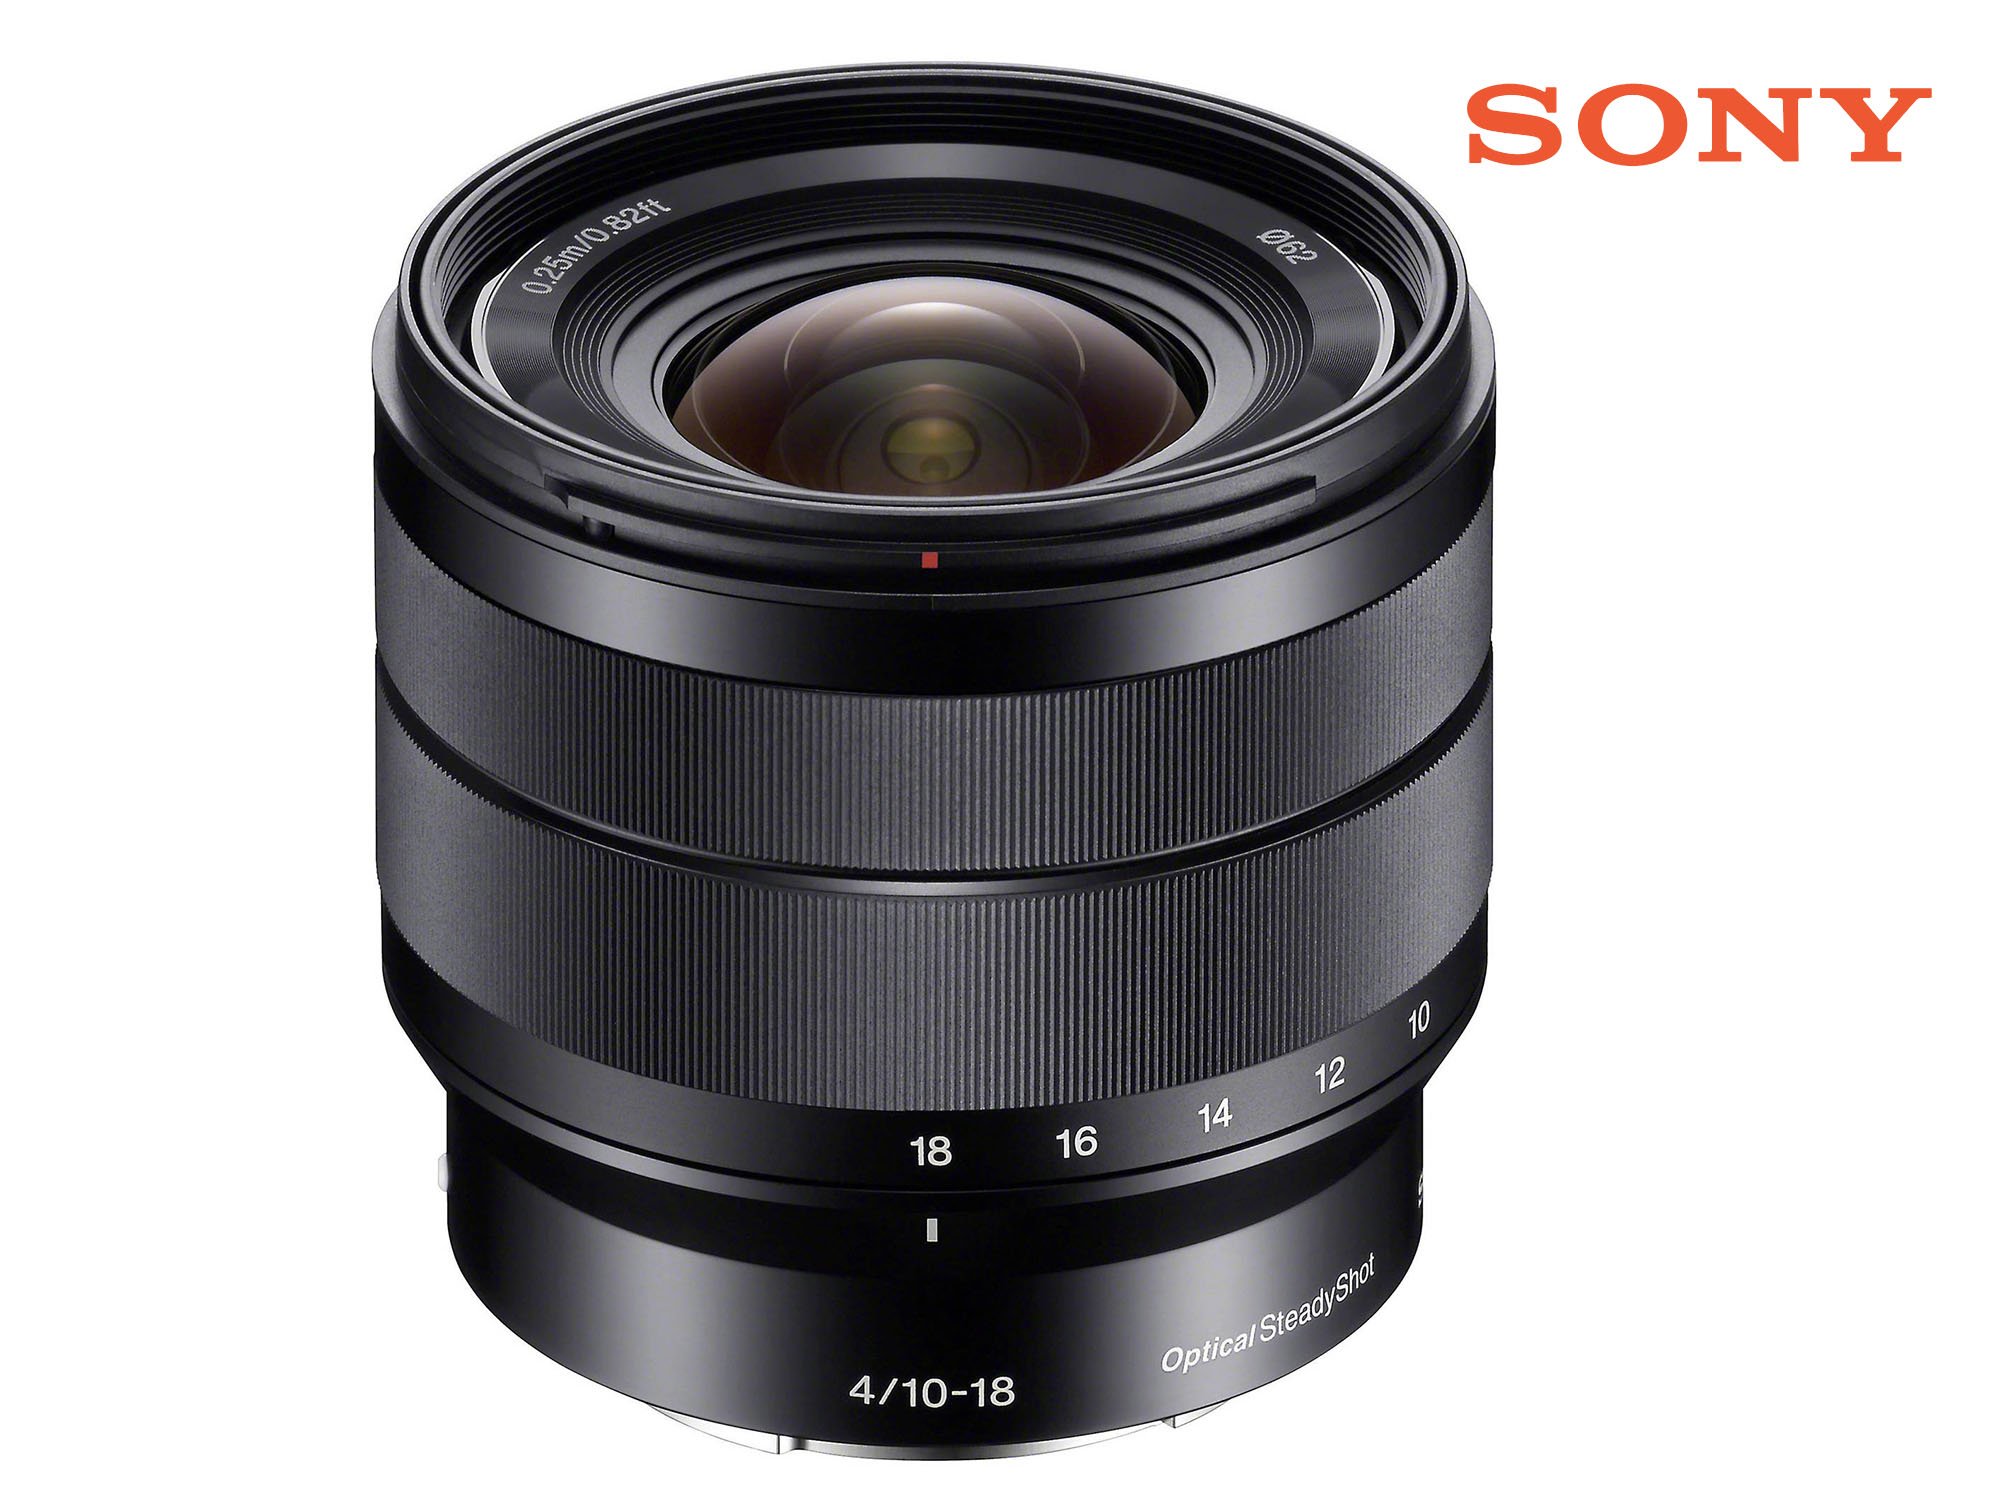 Sony E 10-18mm F4 OSS Zoom Lens